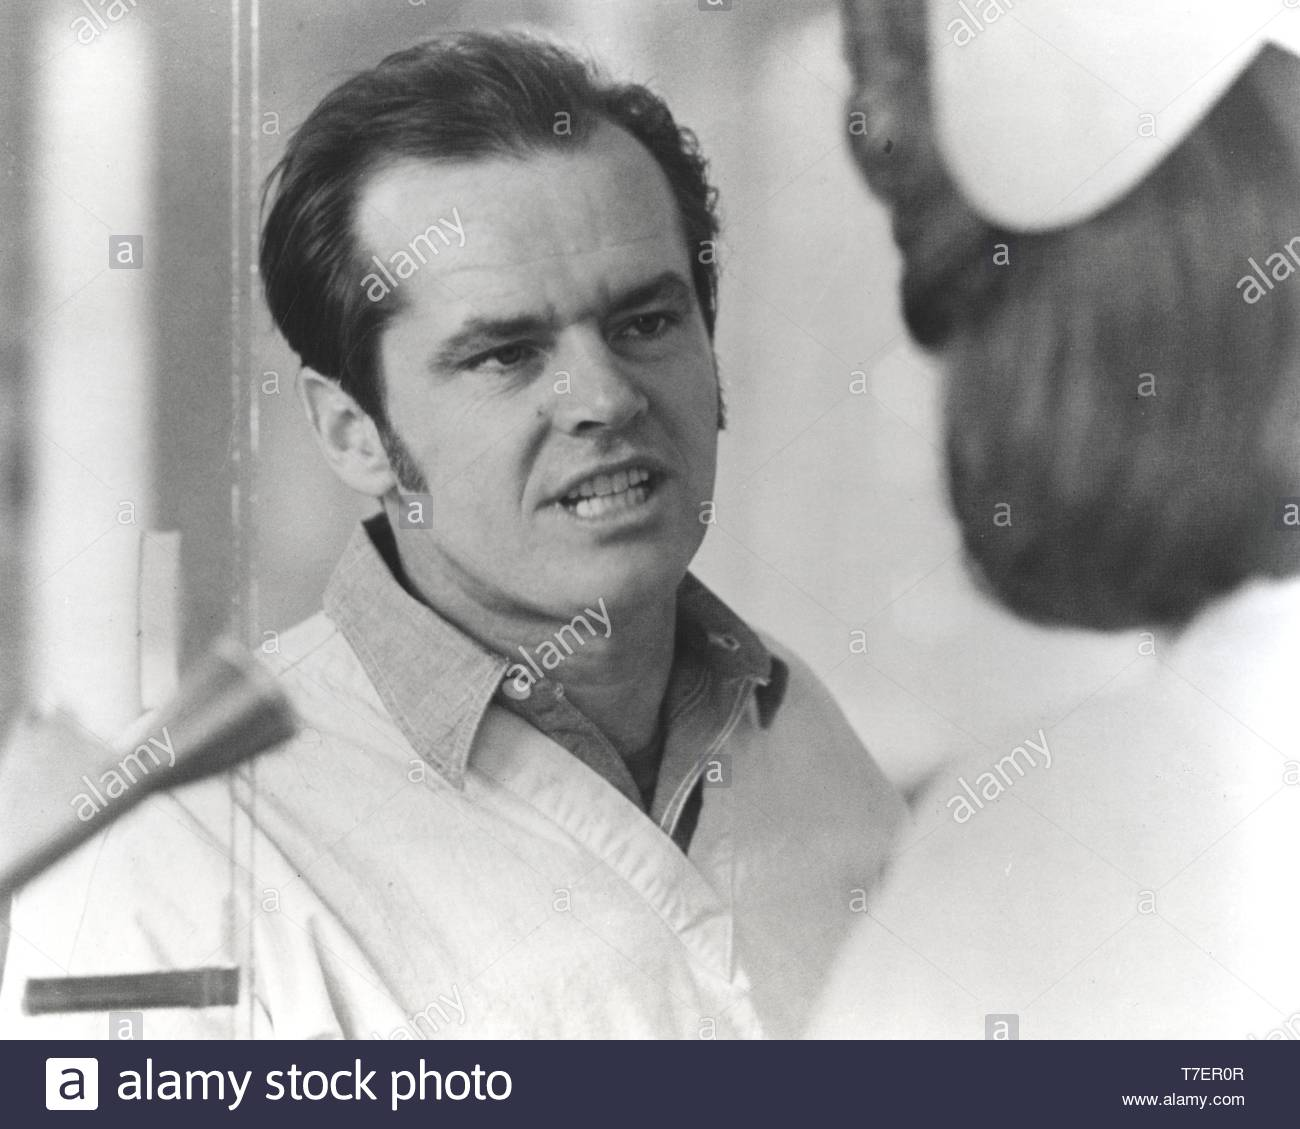 Film still of Jack Nicholson in One Flew Over The Cuckoo's Nest Credit: MSNGlobe / MediaPunch - Stock Image